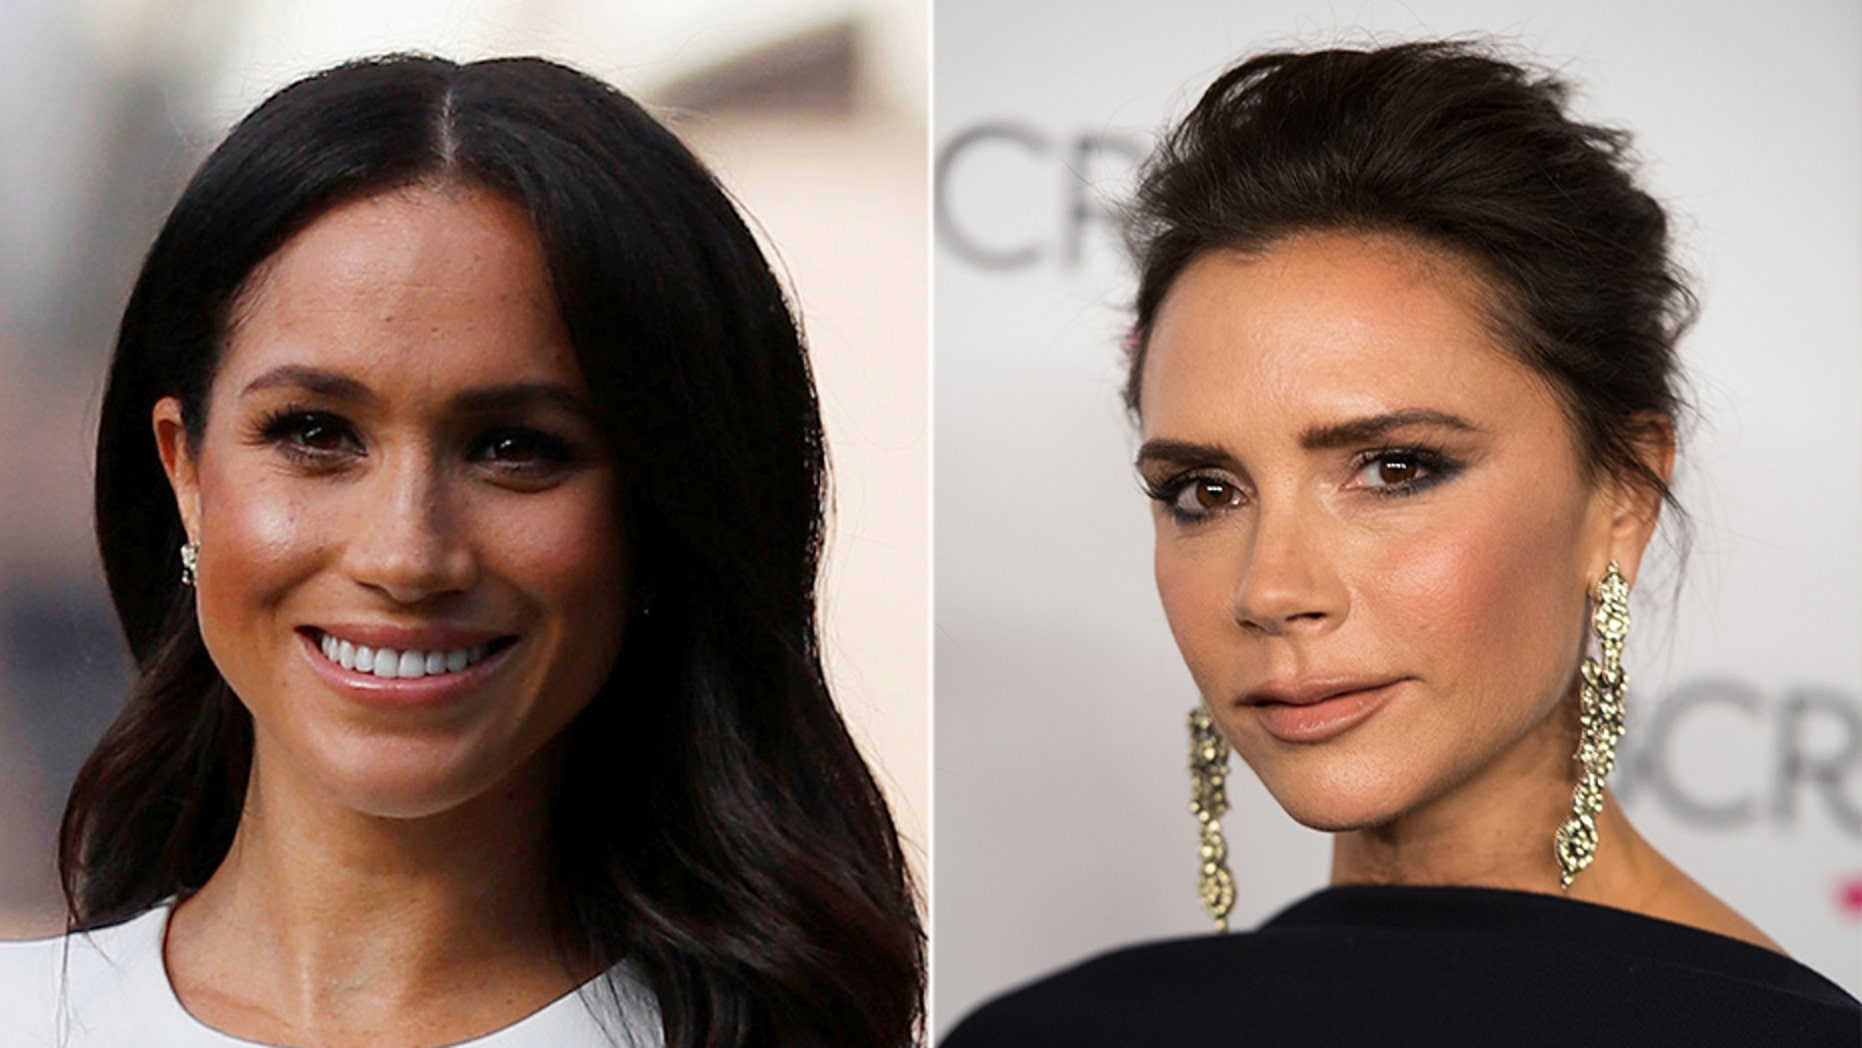 Meghan Marklerevealed why she doesn't wear dresses from pal Victoria Beckham's fashion line.